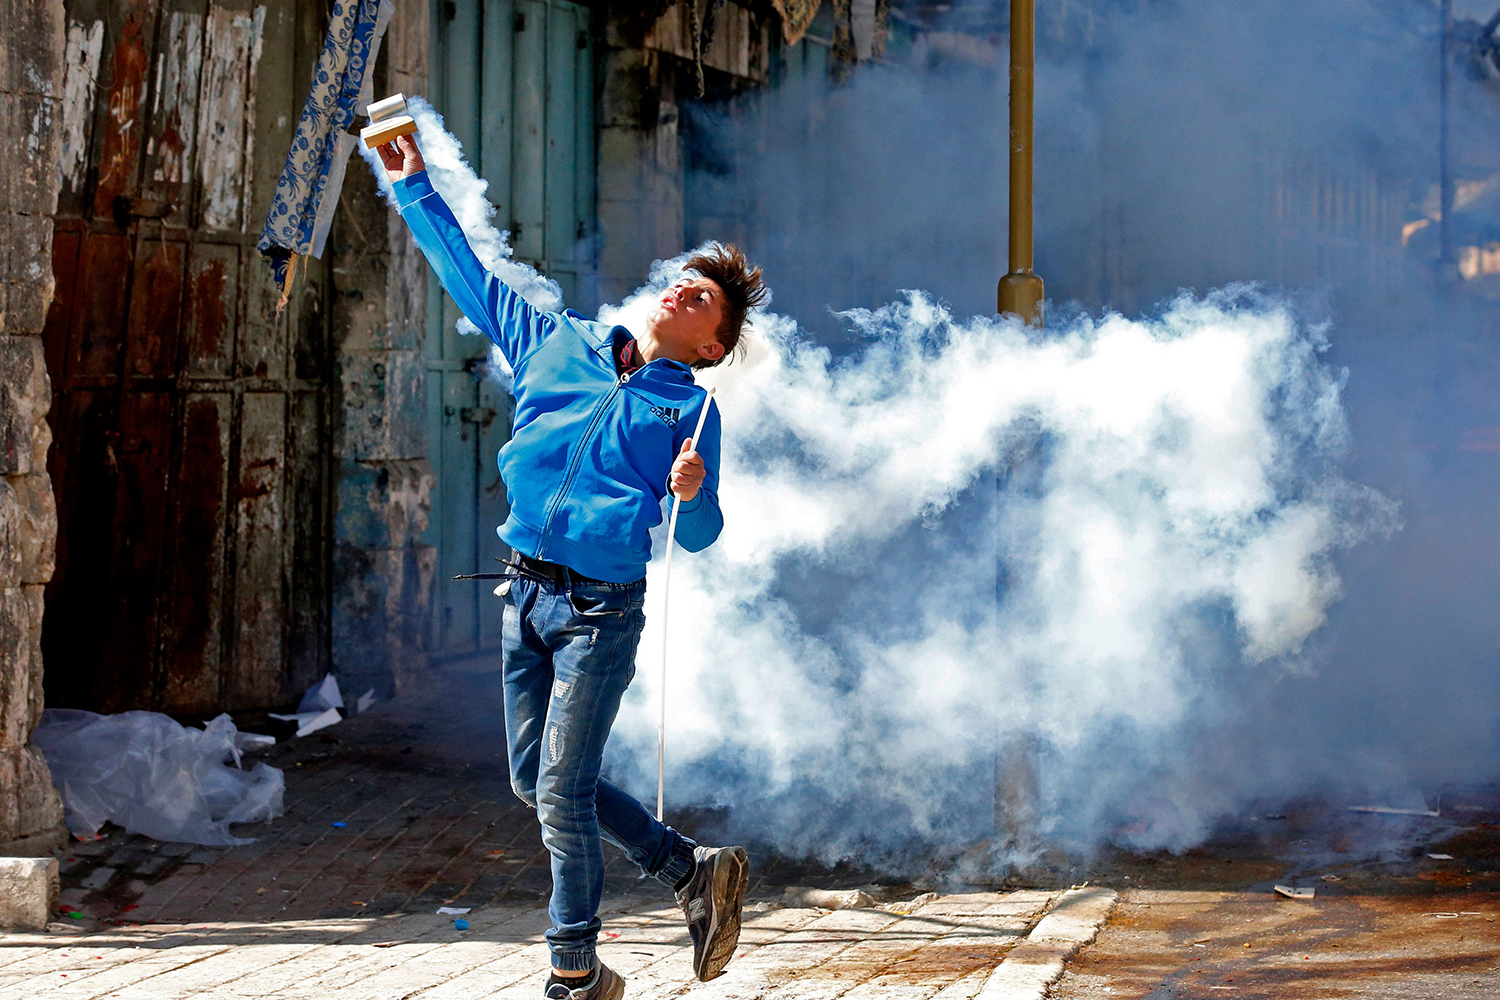 A Palestinian protester throws back a tear gas canister during a demonstration in memory of the 1994 Ibrahimi Mosque massacre, in which a Jewish extremist killed dozens of Palestinian worshippers, in the occupied West Bank city of Hebron on Feb. 26. HAZEM BADER/AFP via Getty Images